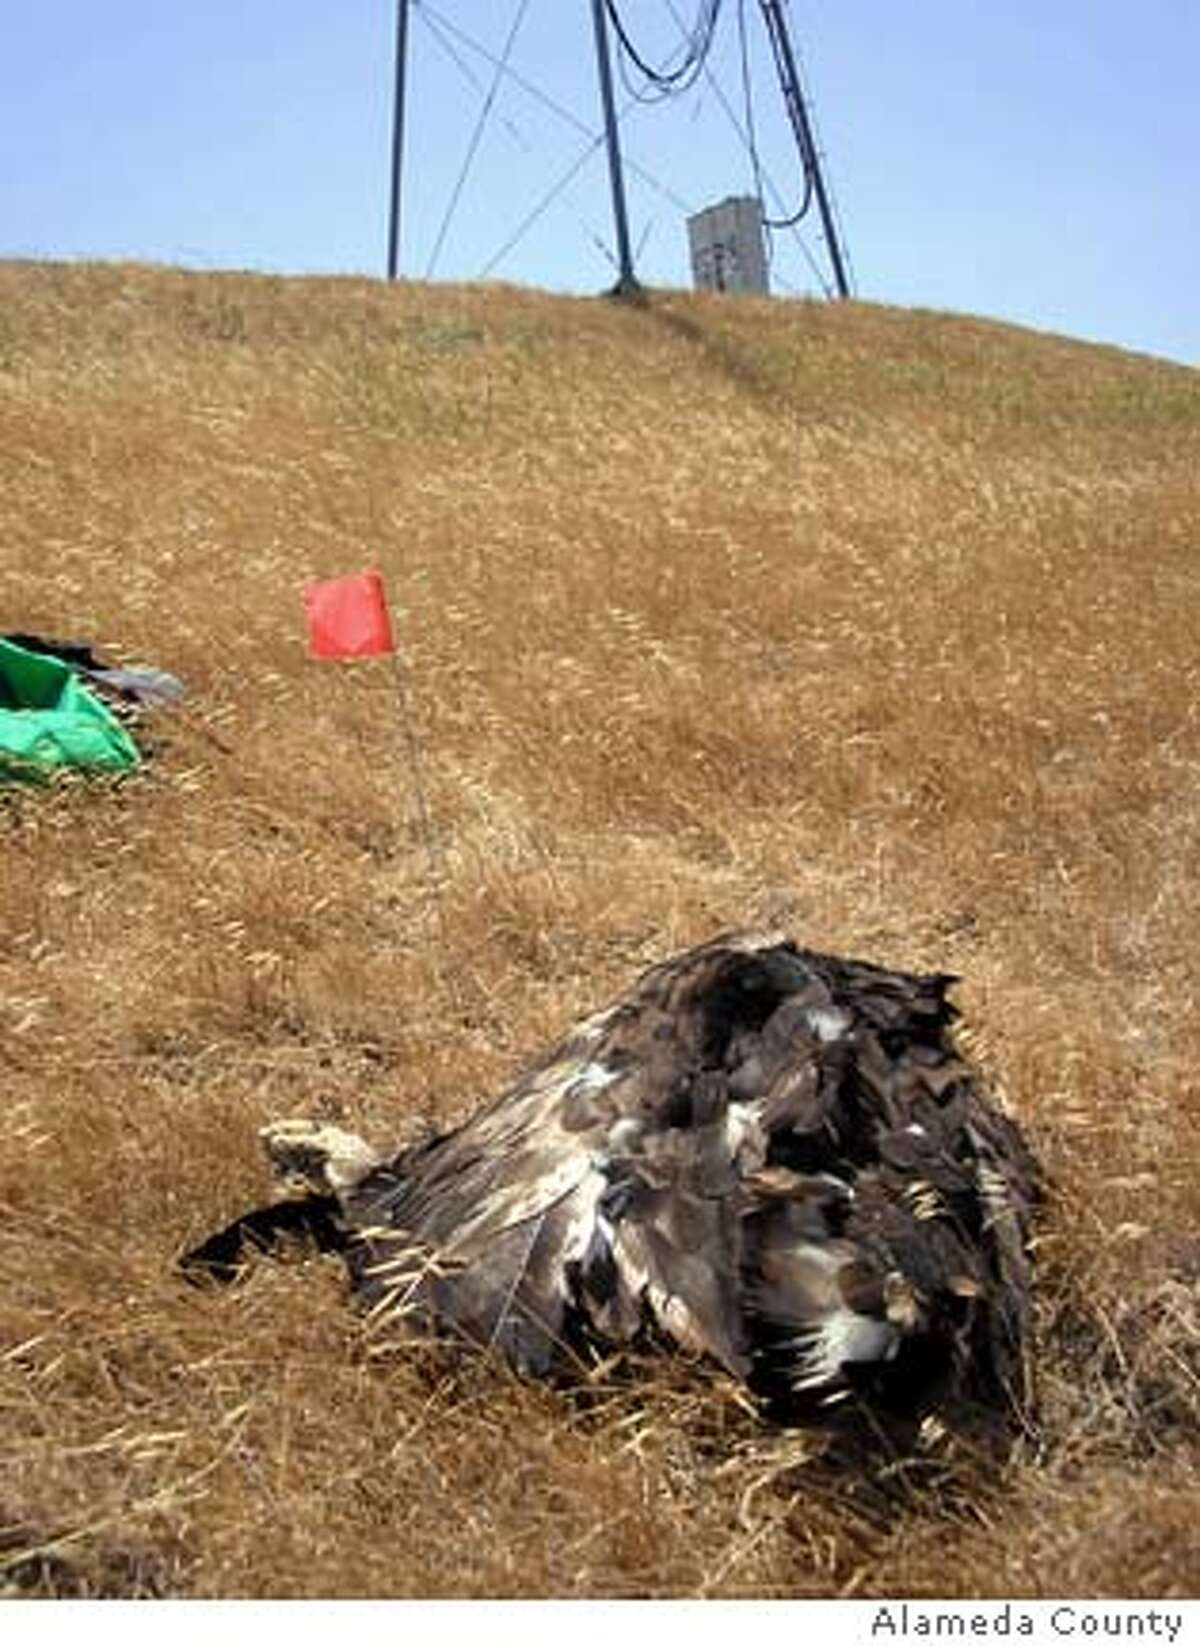 Undated handout image of a Golden Eagle dead near one of the wind turbines at the Altamont Pass Wind Resource Area. Alameda County / Courtesy to The Chronicle Ran on: 01-02-2008 Wind turbines rise above the fog on the hills of the Altamont Pass. Wildlife groups are seeking to relocate or remove some of the power generators. Ran on: 01-02-2008 Wind turbines rise above the fog on the hills of the Altamont Pass. Wildlife groups are seeking to relocate or remove some of the power generators.